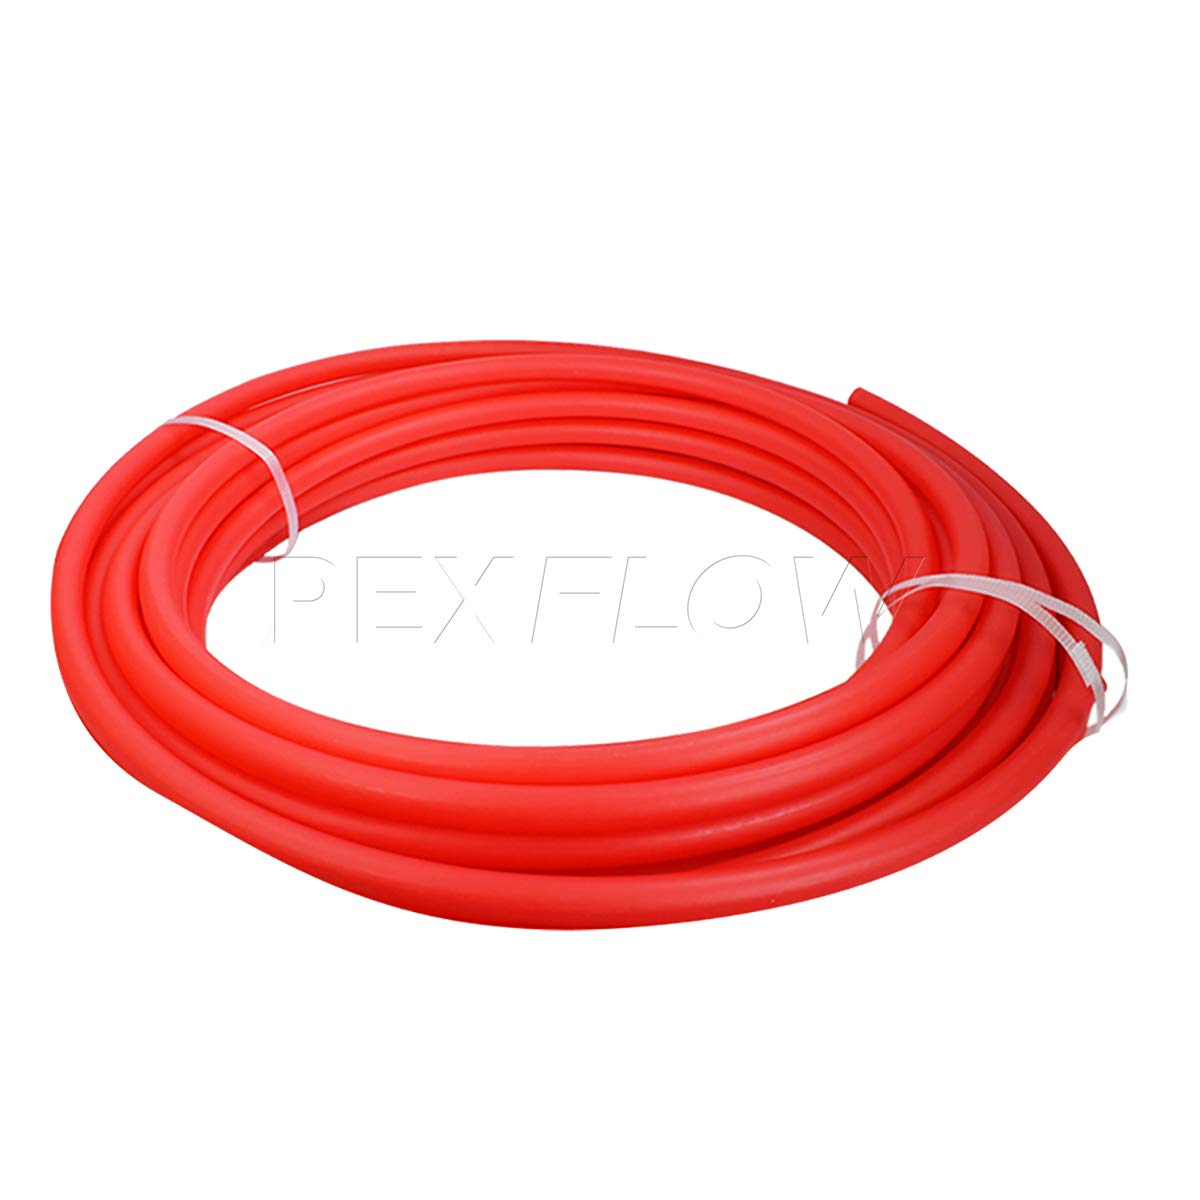 Pexflow PFR-R1100 Oxygen Barrier PEX Tubing for Hydronic Radiant Floor Heating Systems, 1 Inch x 100 Feet, Red